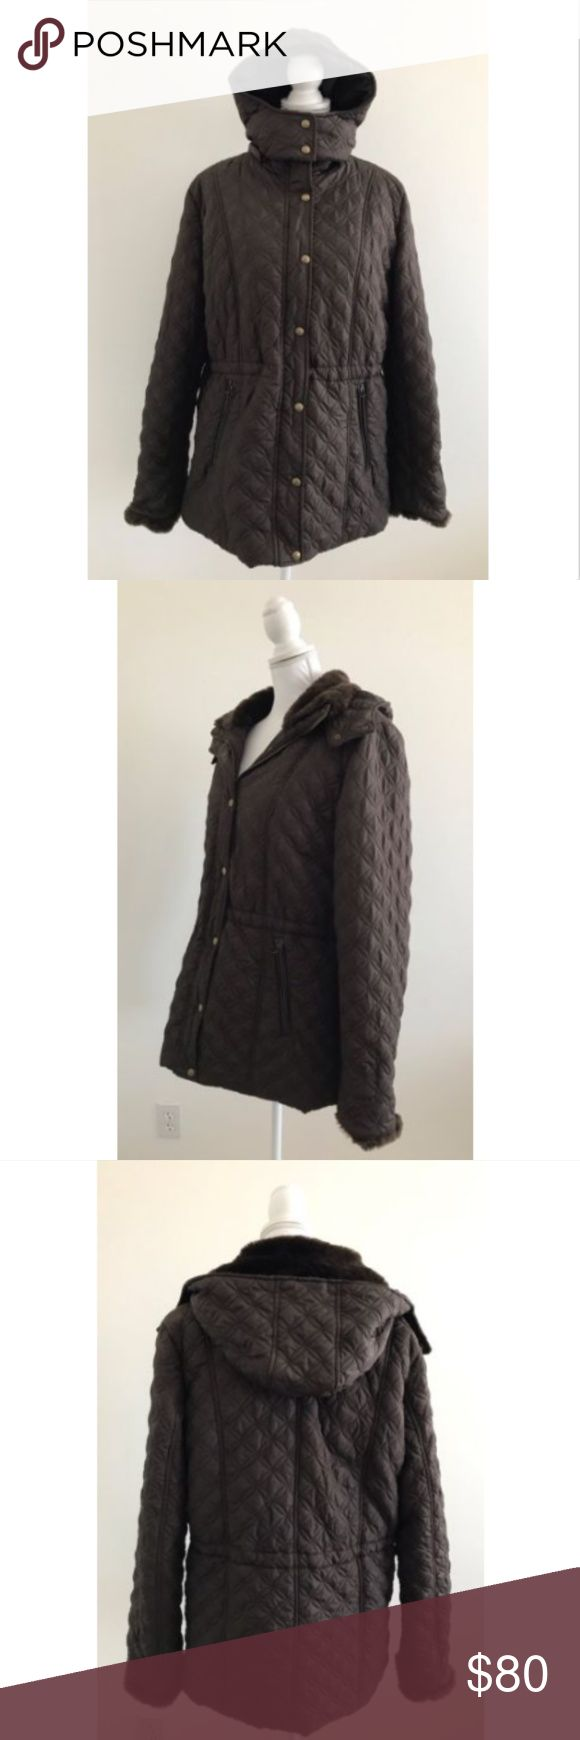 """Andrew Marc Brown Quilted Faux Fur Hoodie Jacket Gently used, no holes, no stains. Beautiful brown quilted coat jacket, circle diamond design, snap button and zipper closures, 2 front zippered pockets, detachable hoodie, soft faux fur lining.    Measurements (laying flat) Width (pit to pit): 22.5"""" Length (top to bottom): 30.5"""" Sleeve length (shoulder seam to bottom of sleeve): 27.5"""" Andrew Marc Jackets & Coats Puffers"""